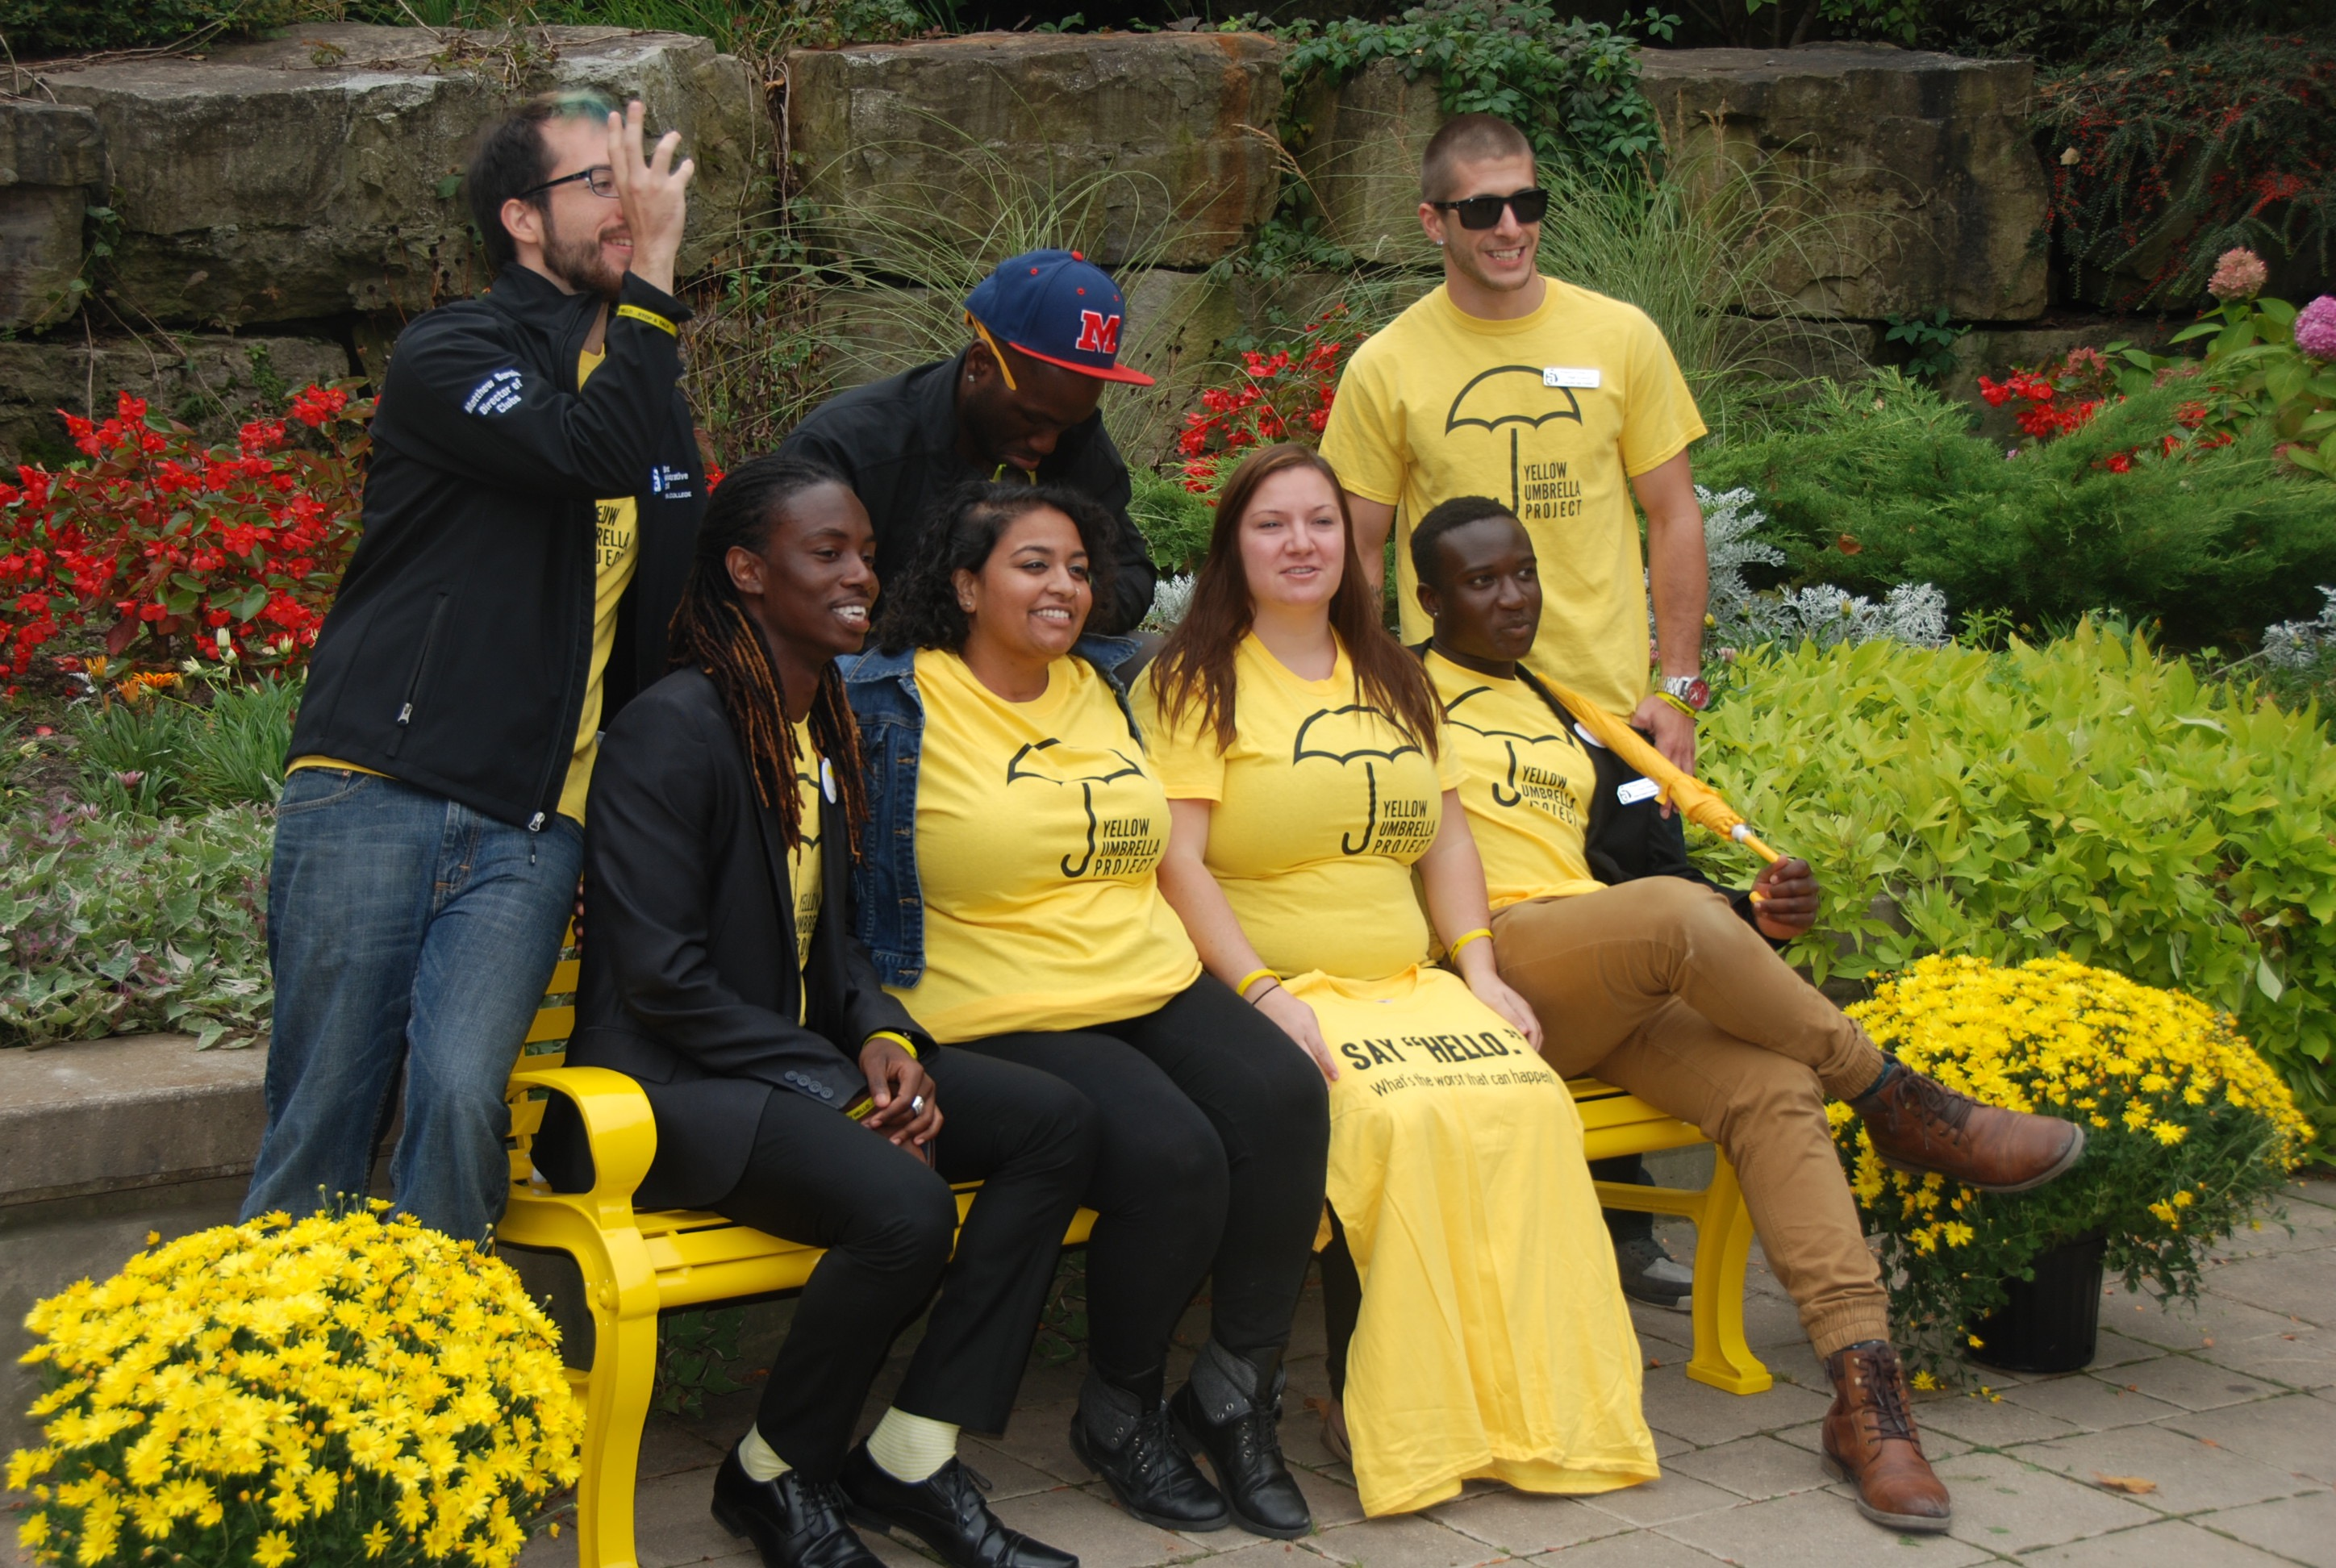 #YellowIsForHello | The Friendship Bench | Niagara College